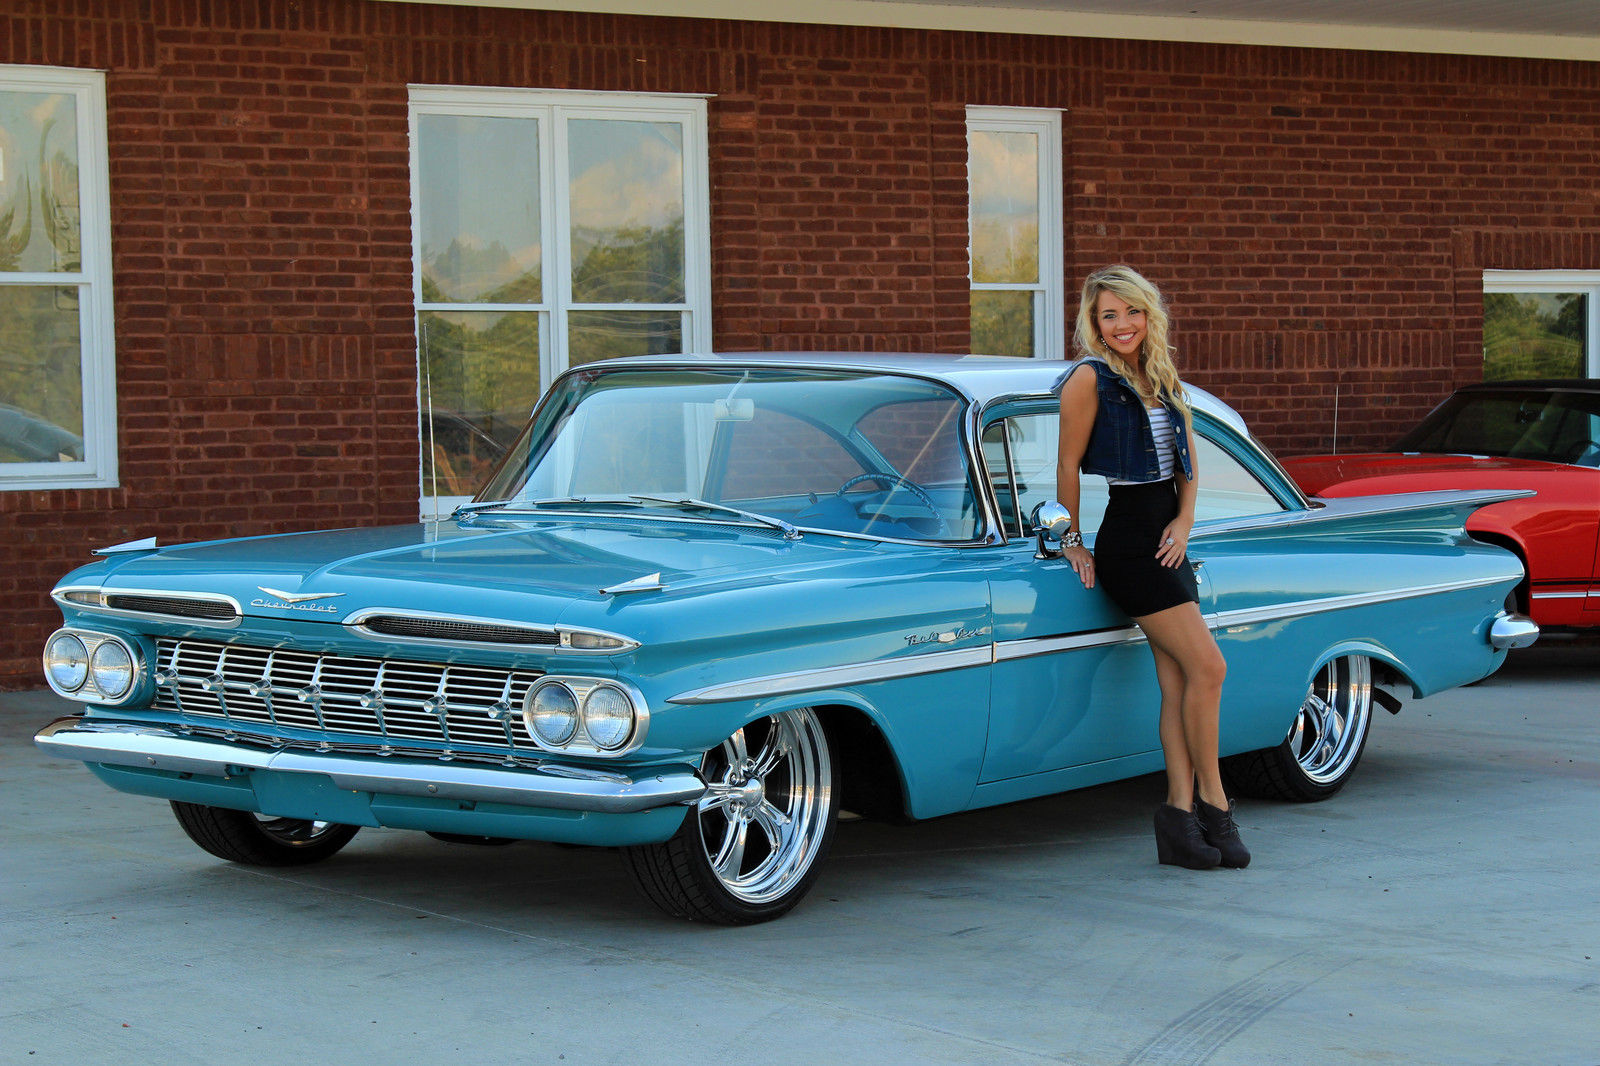 1959 chevy bel air v8 automatic power steering power. Black Bedroom Furniture Sets. Home Design Ideas